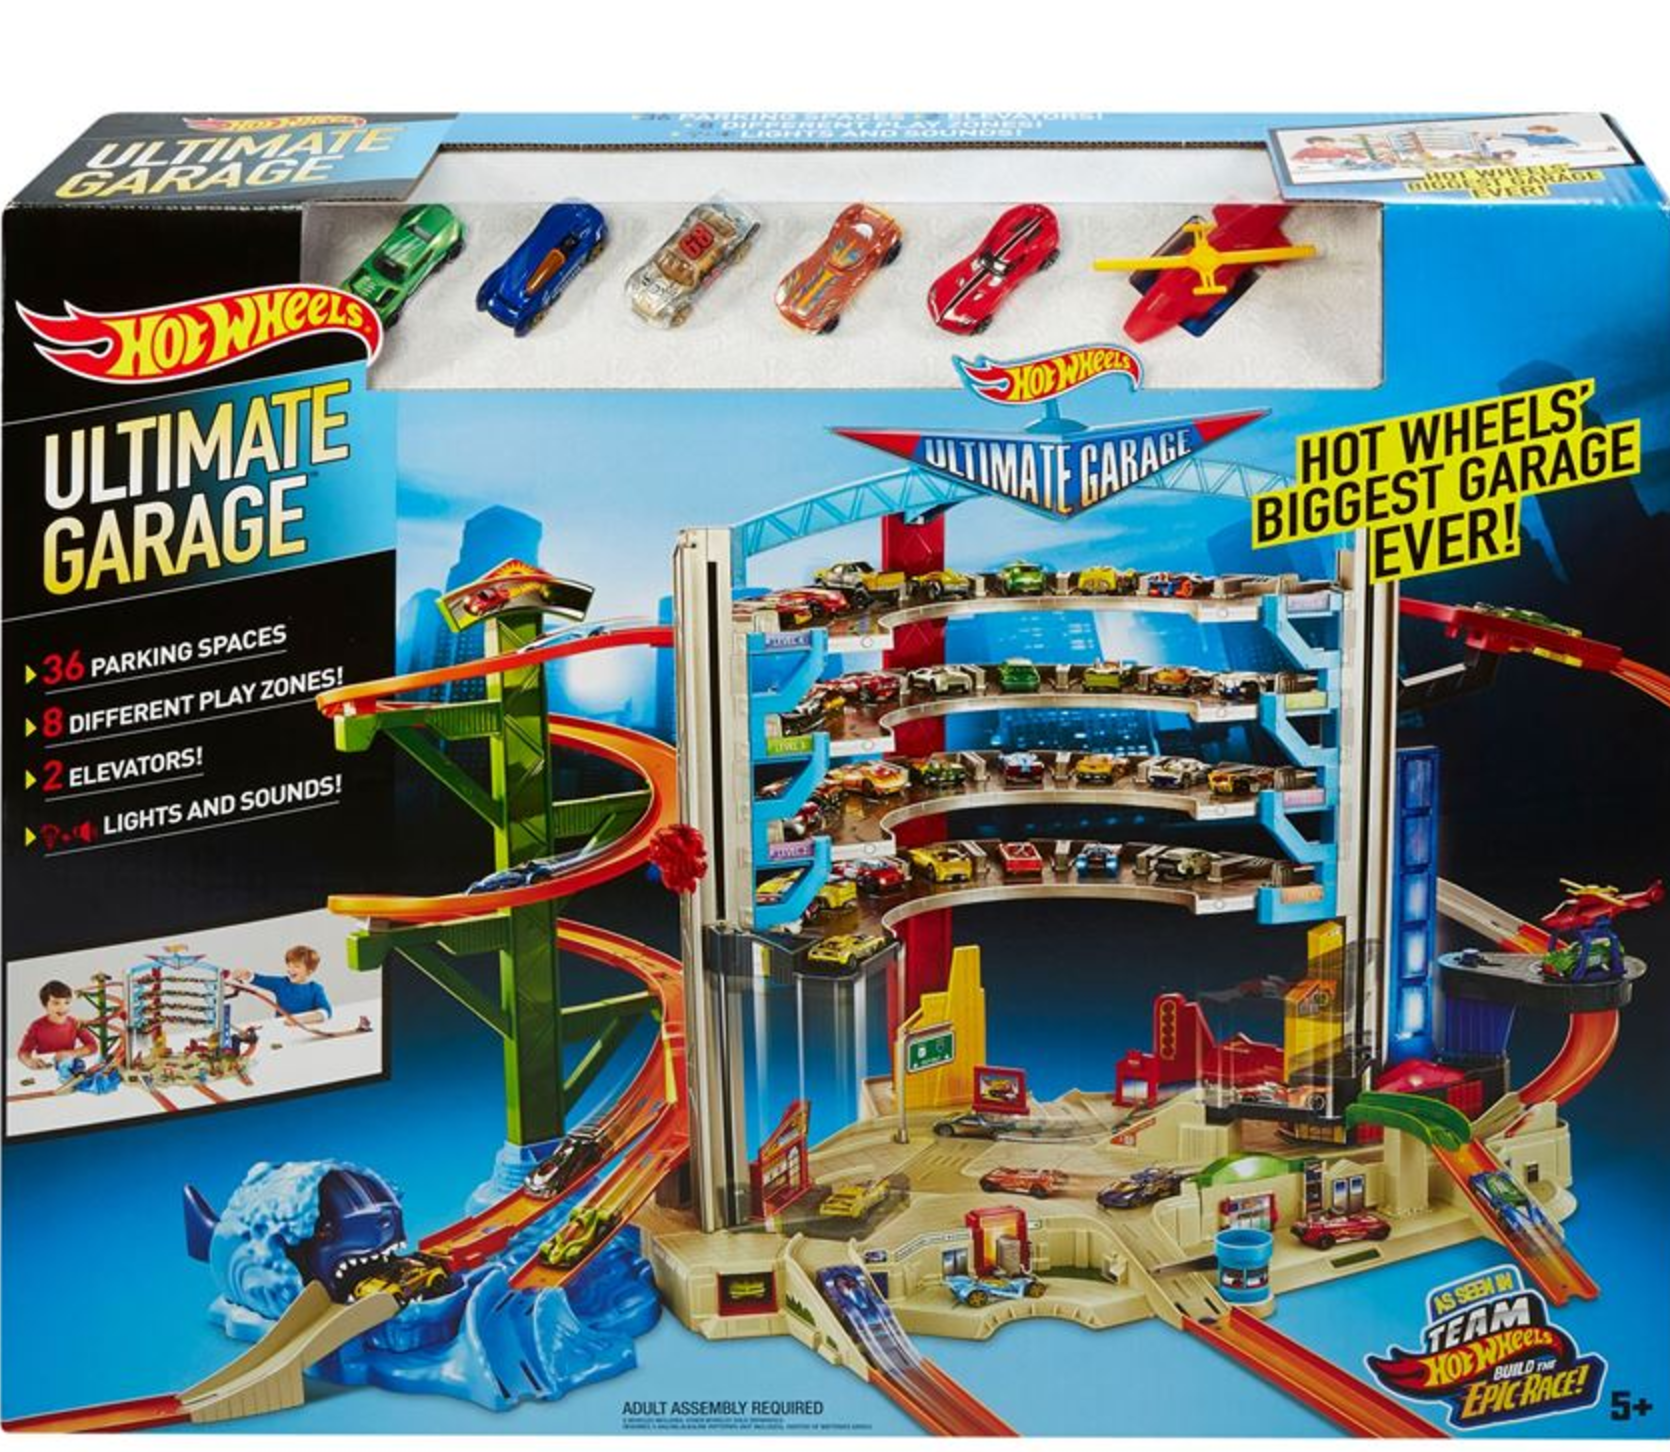 Top 10 Toys For Little Boys This Christmas That Are Not TOO Noisy